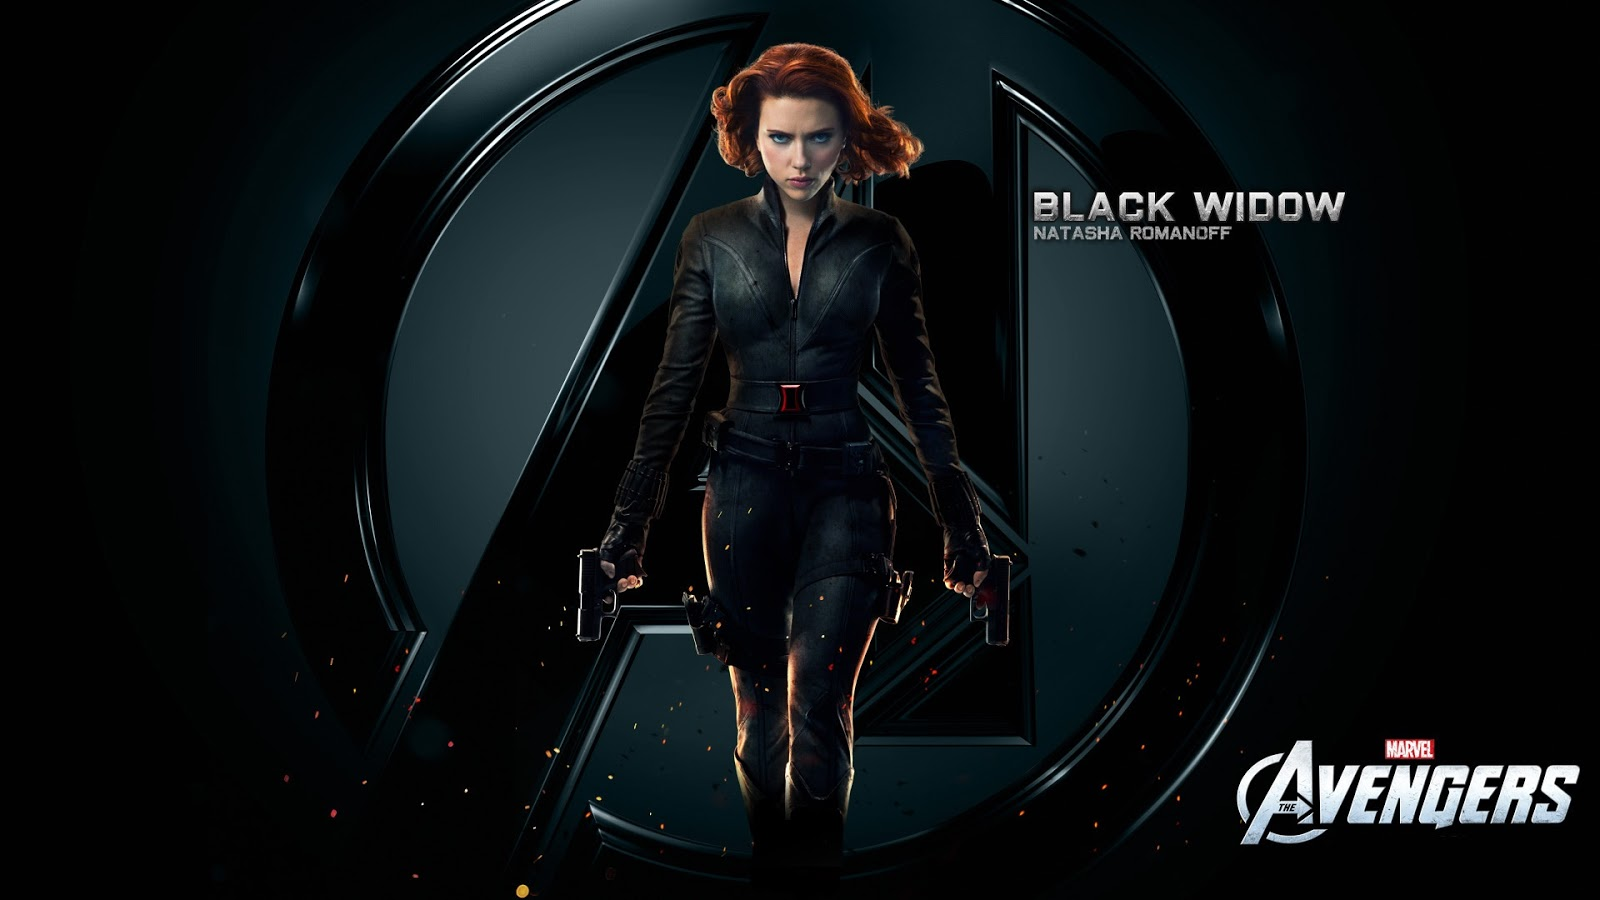 Black Widow Natasha Romanoff in Avengers Wallpaper HD